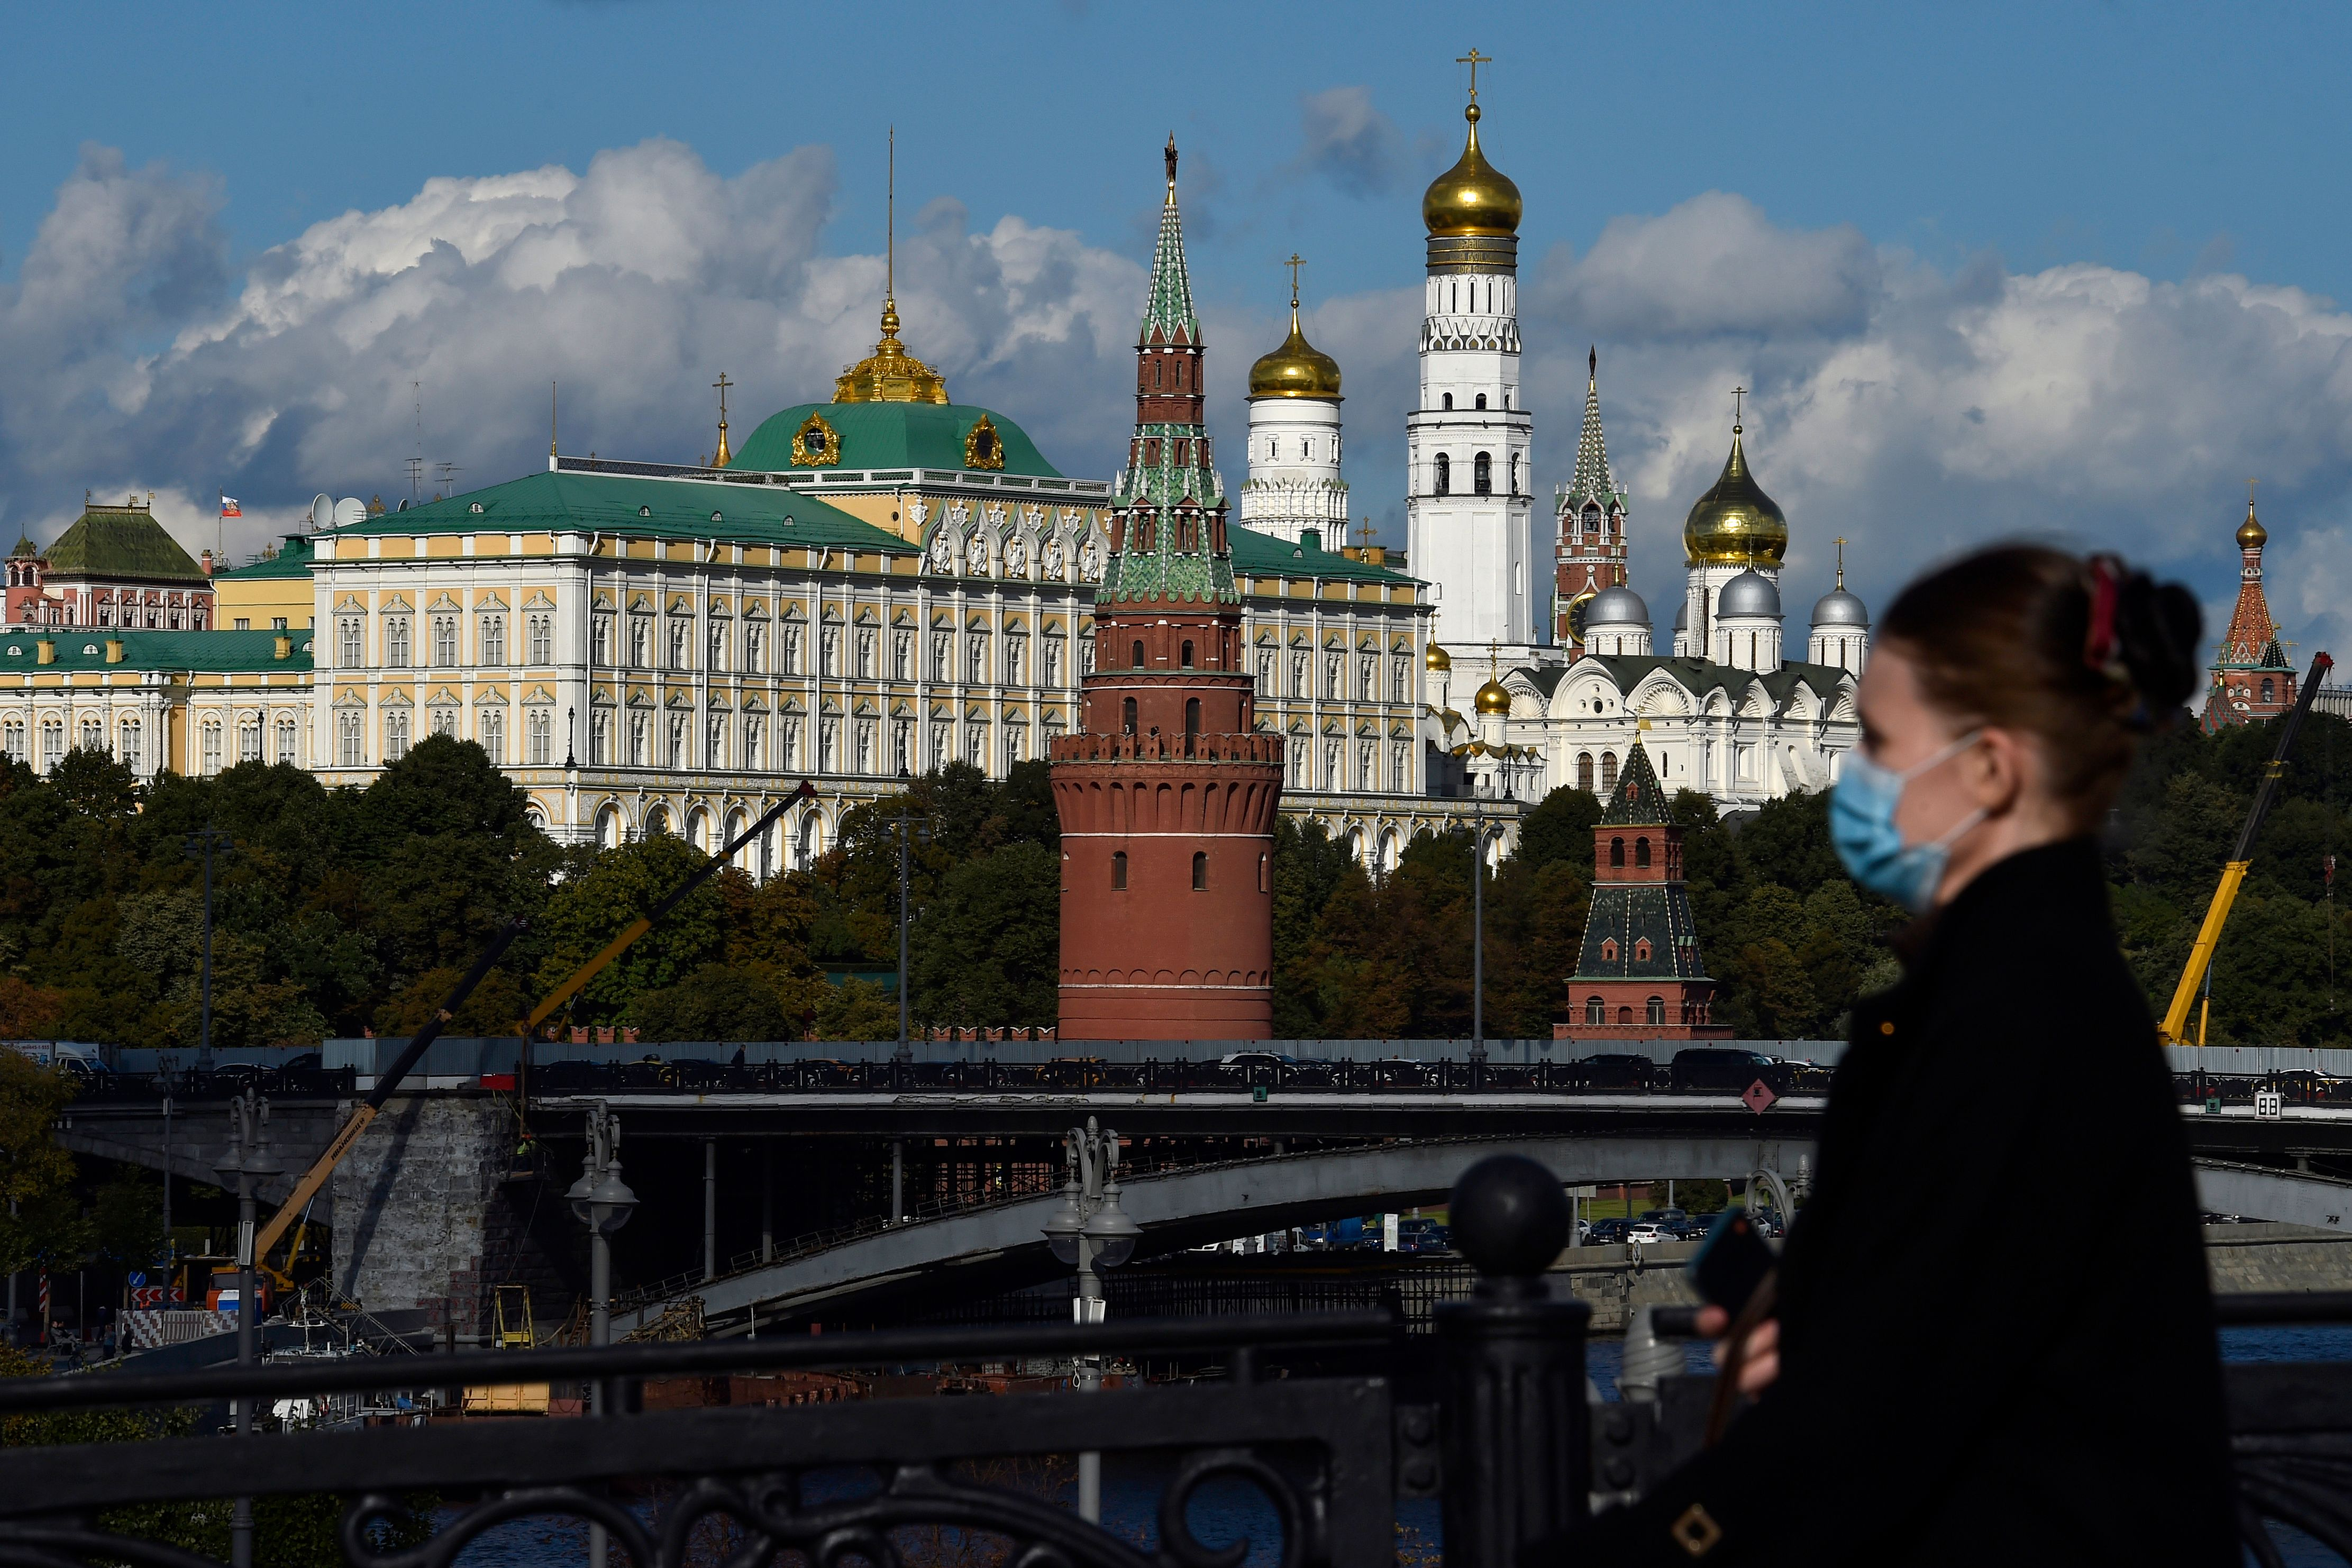 A woman wearing a face mask to protect against the coronavirus disease walks in downtown Moscow, with the Kremlin seen in the background, on Sept. 15, 2020.